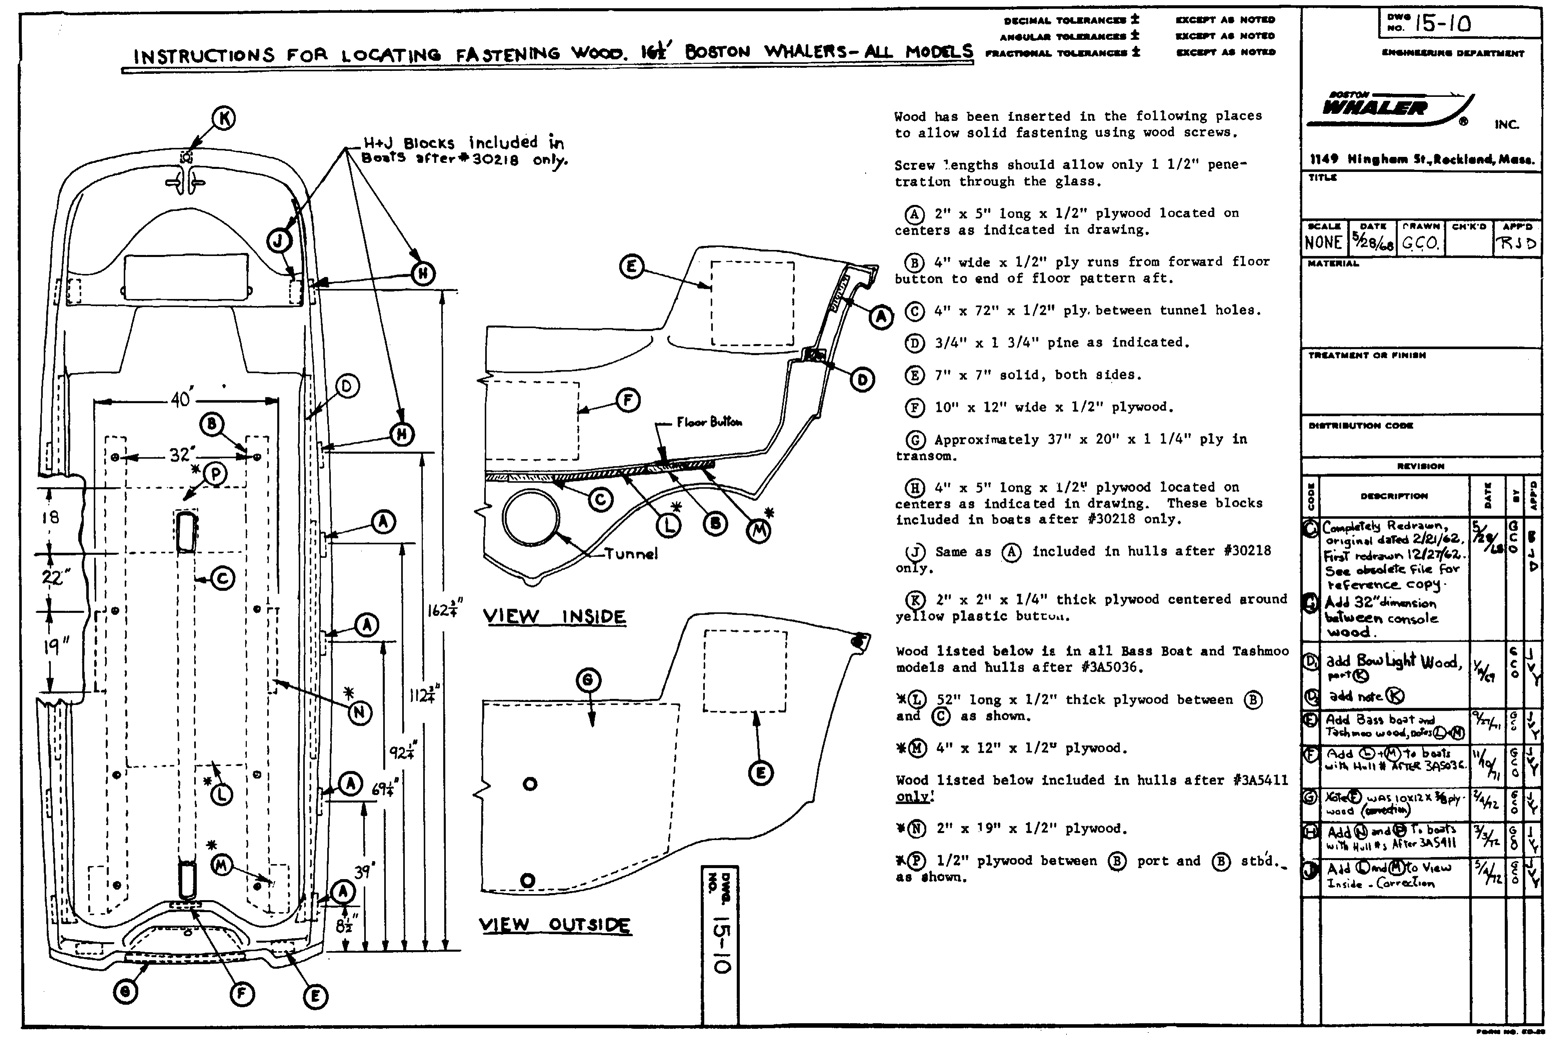 coffing hoist wiring diagram sylvania t8 ballast 1 ton library magnificent mold best images for electrical